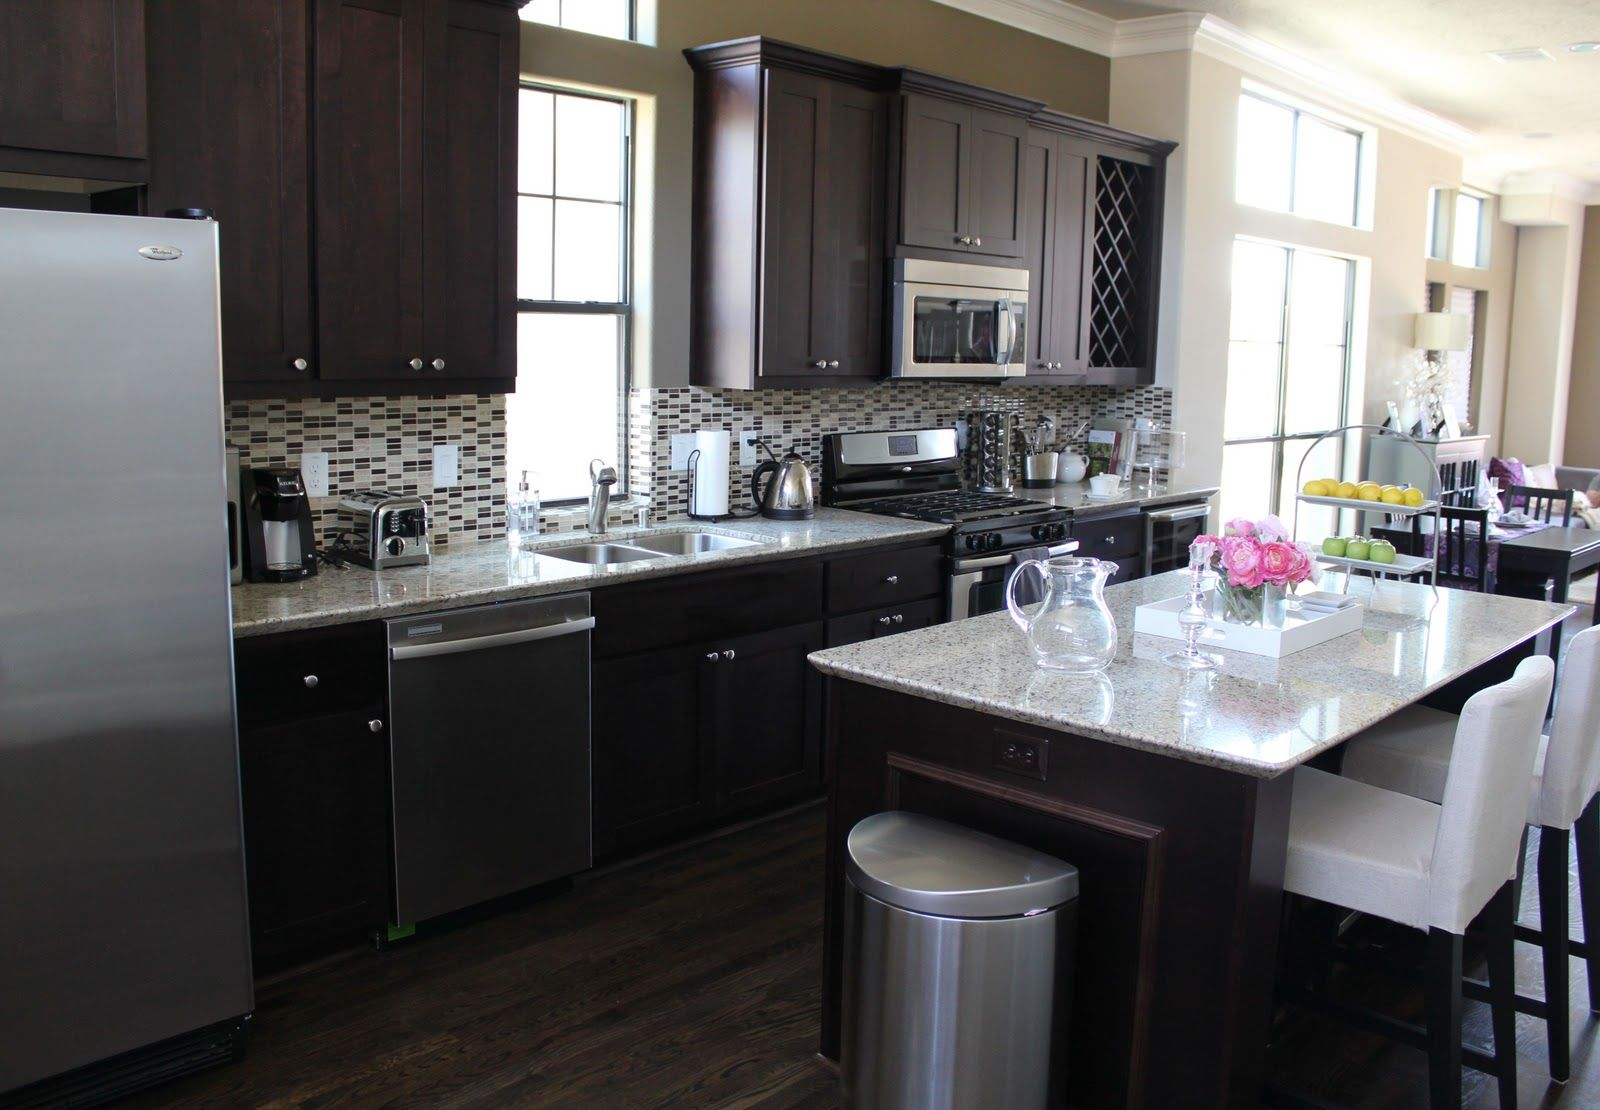 Kitchen Decorations For Countertops My Dream Kitchen Open Concept Dark Cabinets White